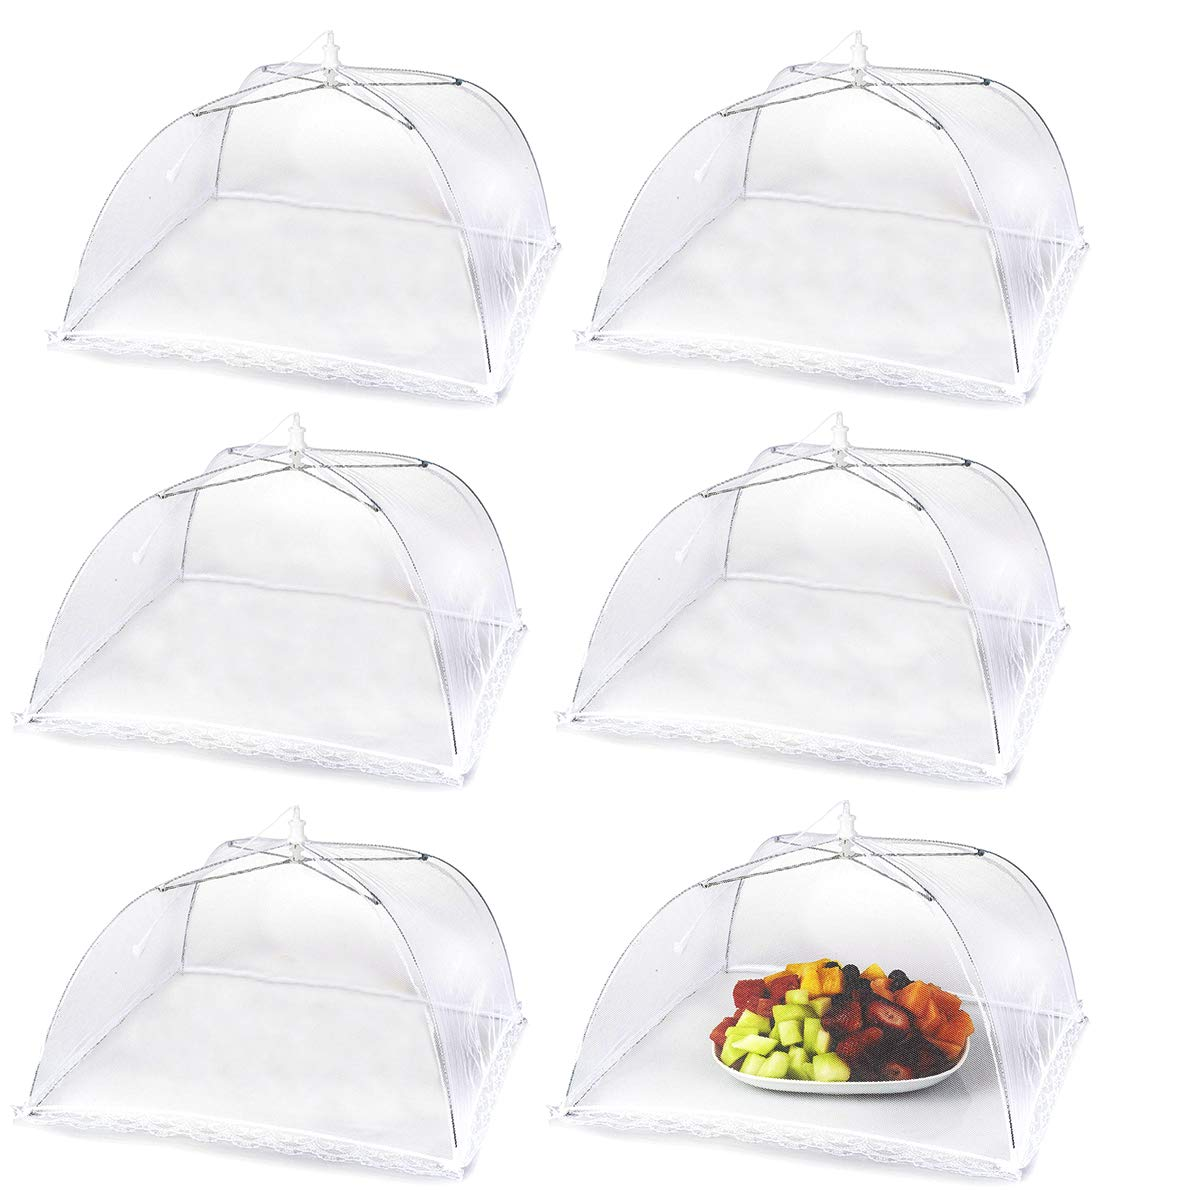 Food Tent Covers for Outdoors 17'' Pop Up Food Cover Nets Set of 6